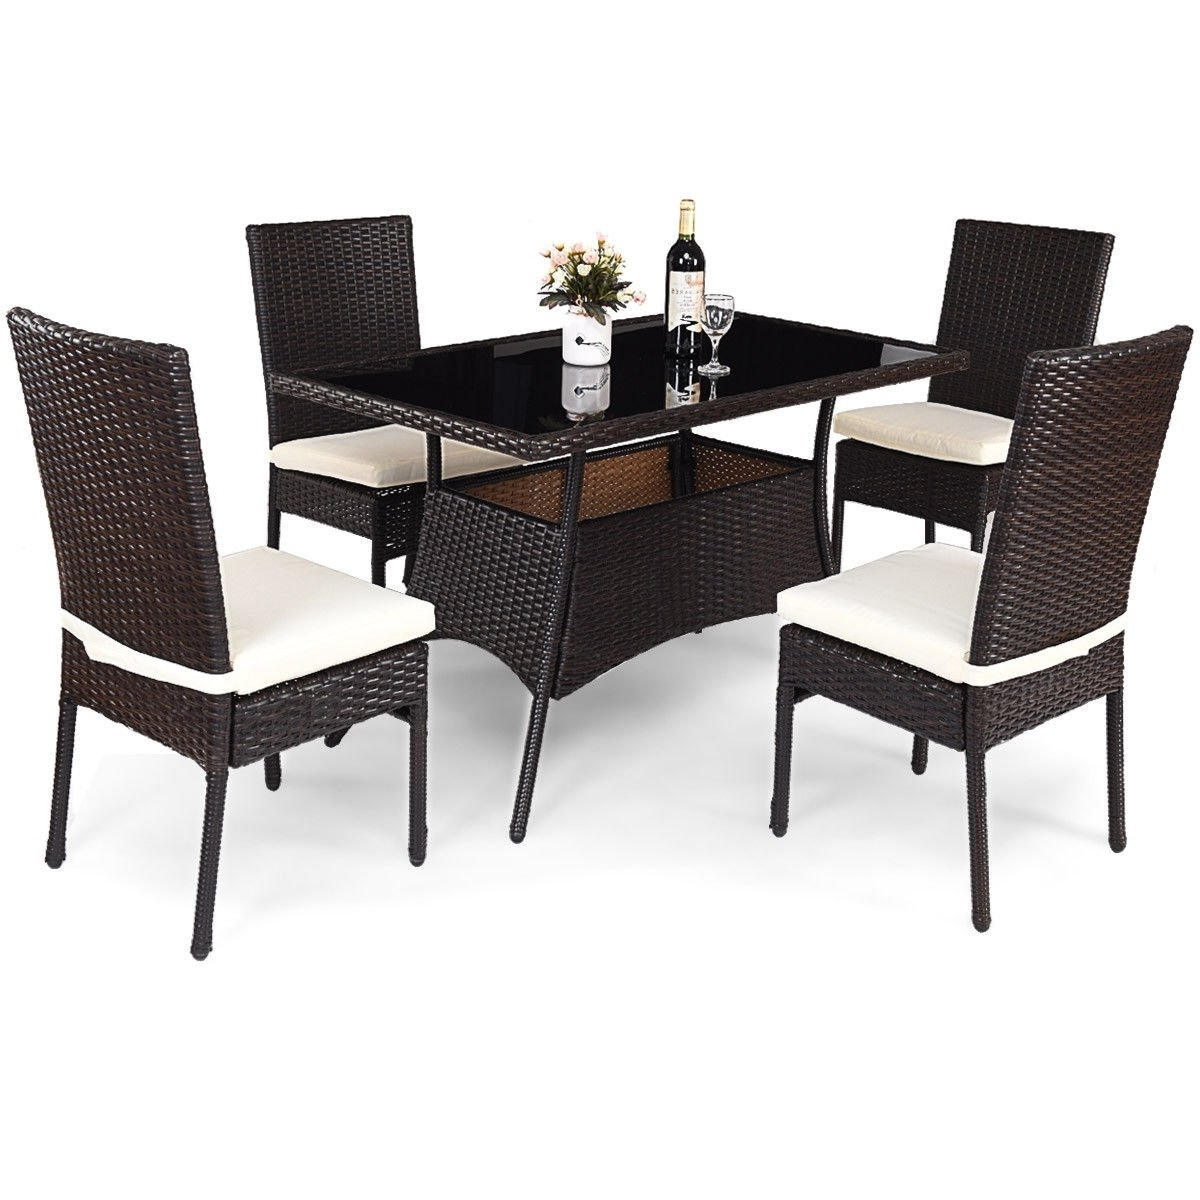 Rattan Dining Tables Intended For Most Popular Shop Costway 5 Piece Outdoor Patio Furniture Rattan Dining Table (View 14 of 25)